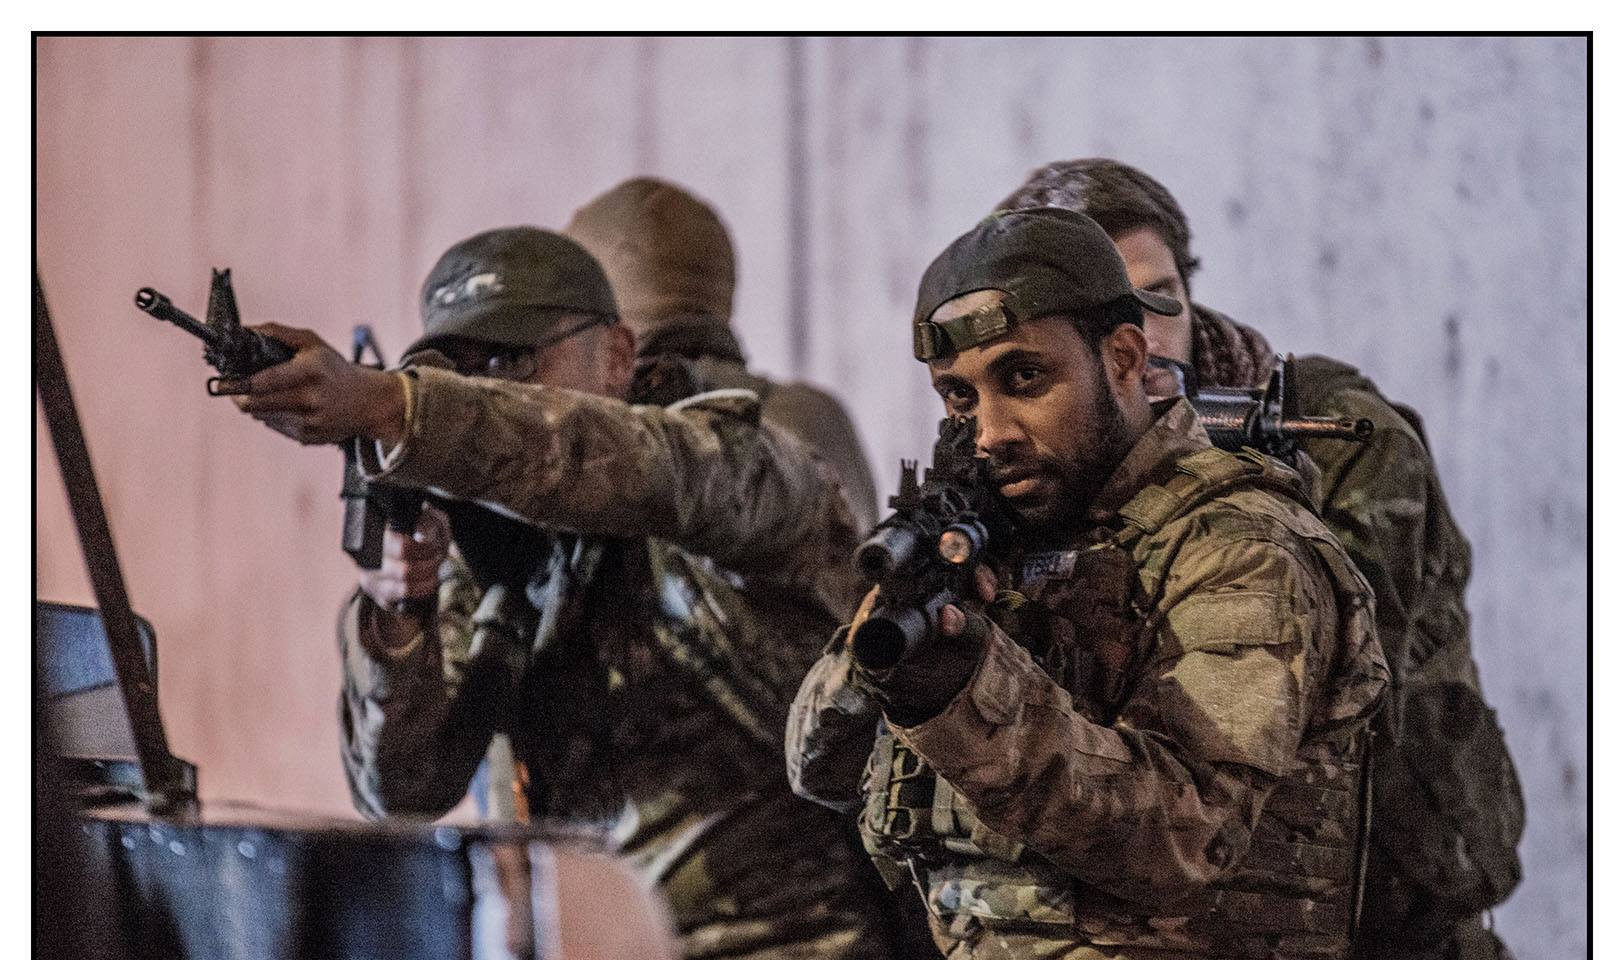 """Assissted production designer, Jon Helgren, with additional US Army uniforms on """"This Shall Pass,"""" directed by Landon Salyer"""